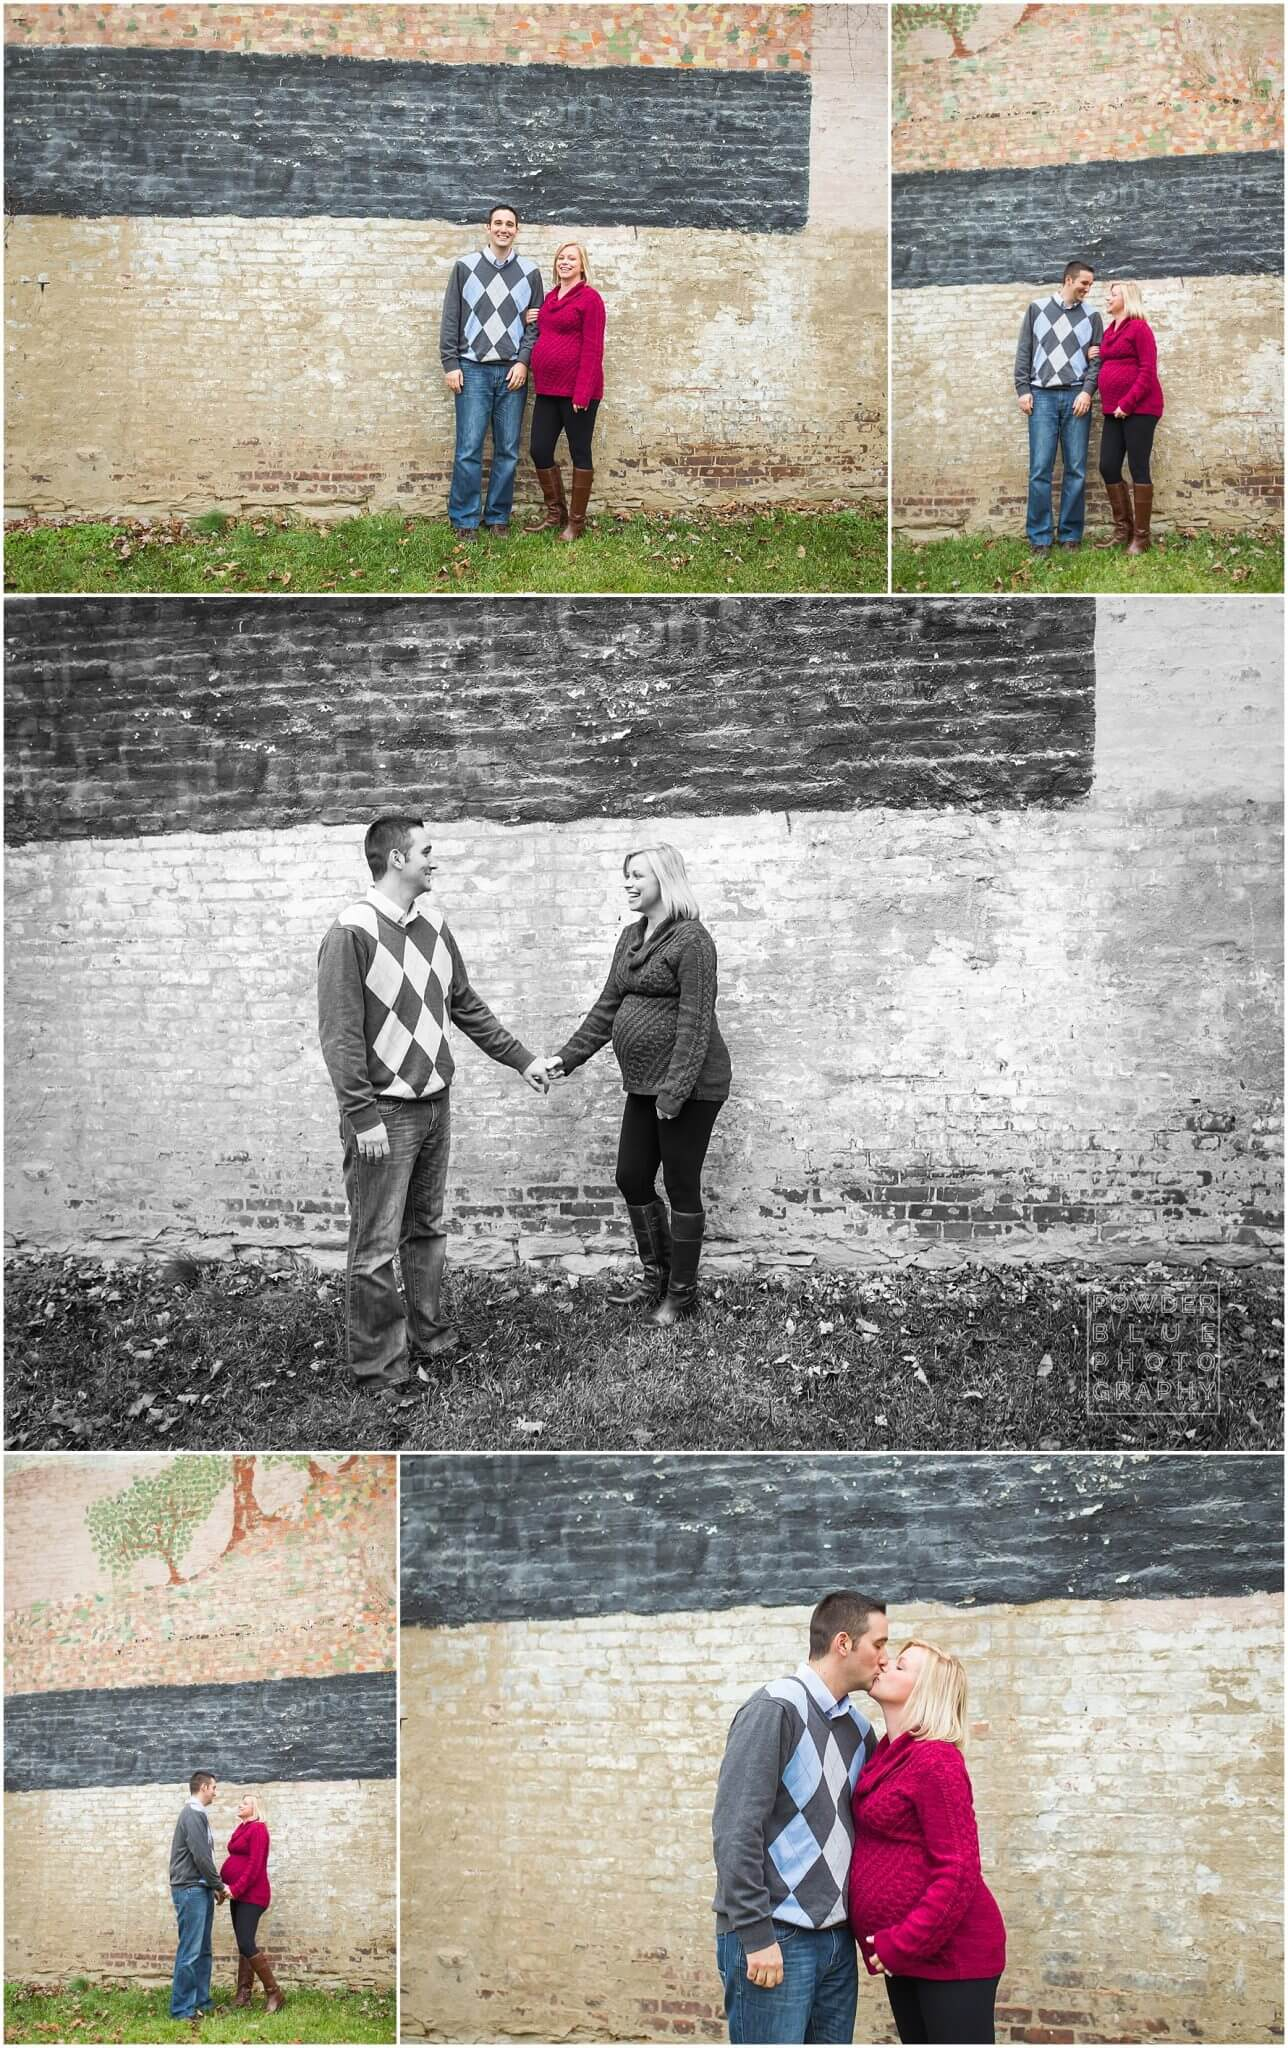 pittsburgh maternity photographer missy timko from powder blue photography shot these twin pregnancy maternity session images. pittsburgh maternity photographer powder blue photography.